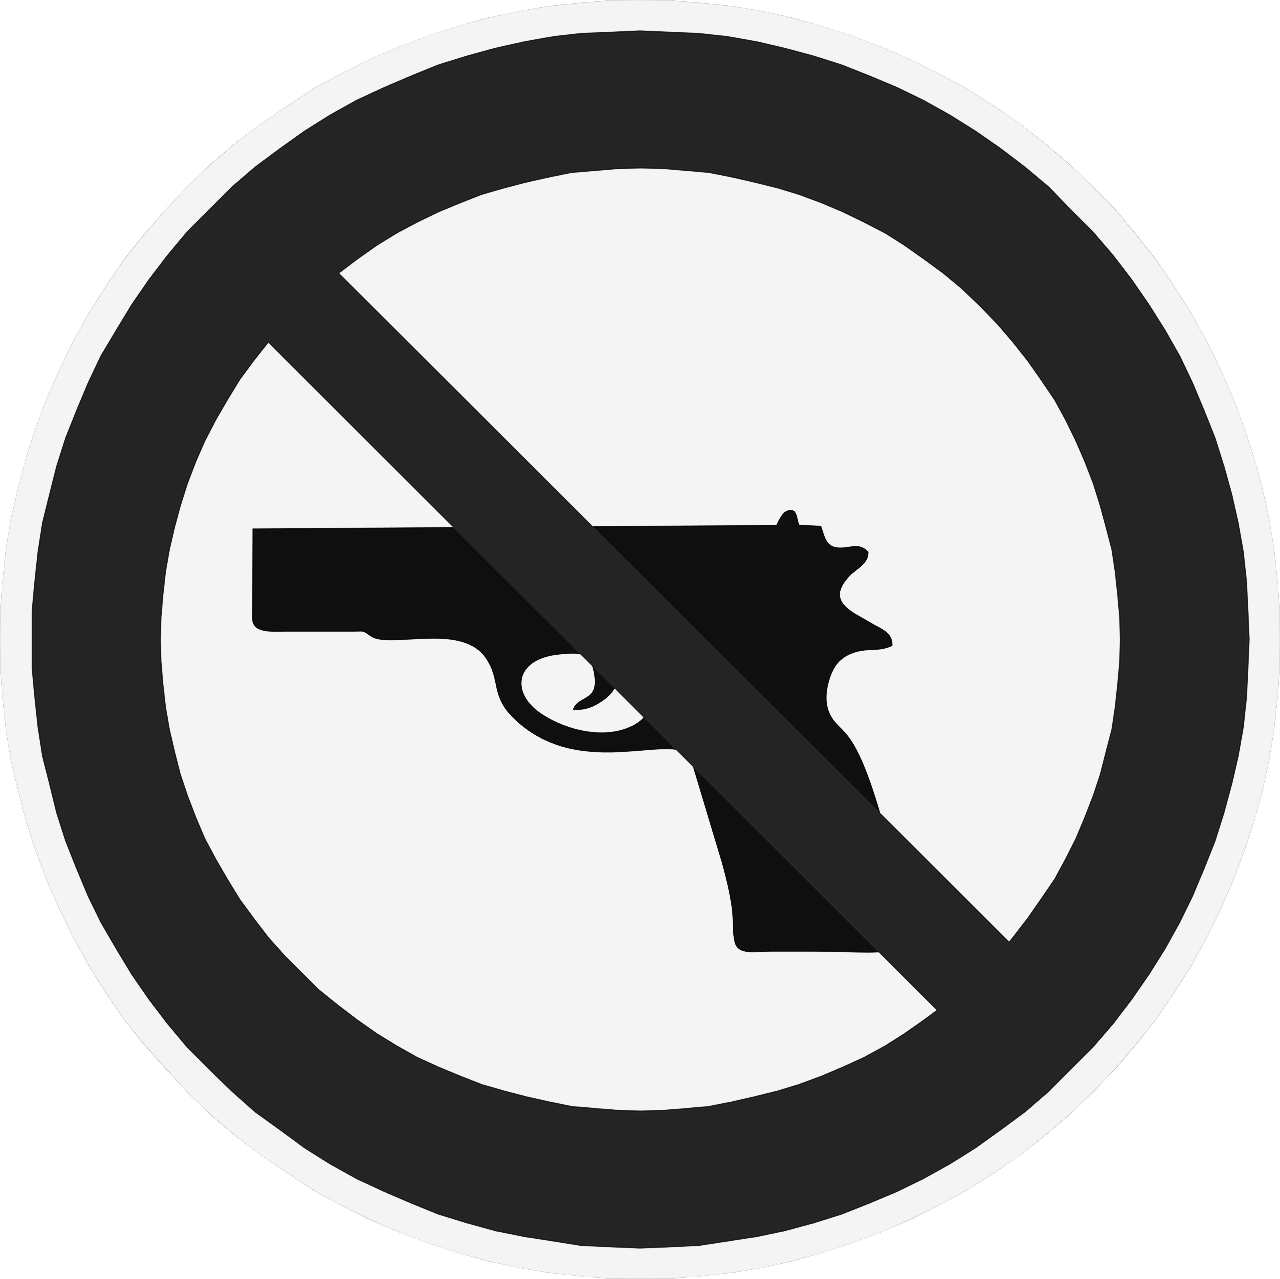 Pistol clipart pro gun. Your right to request